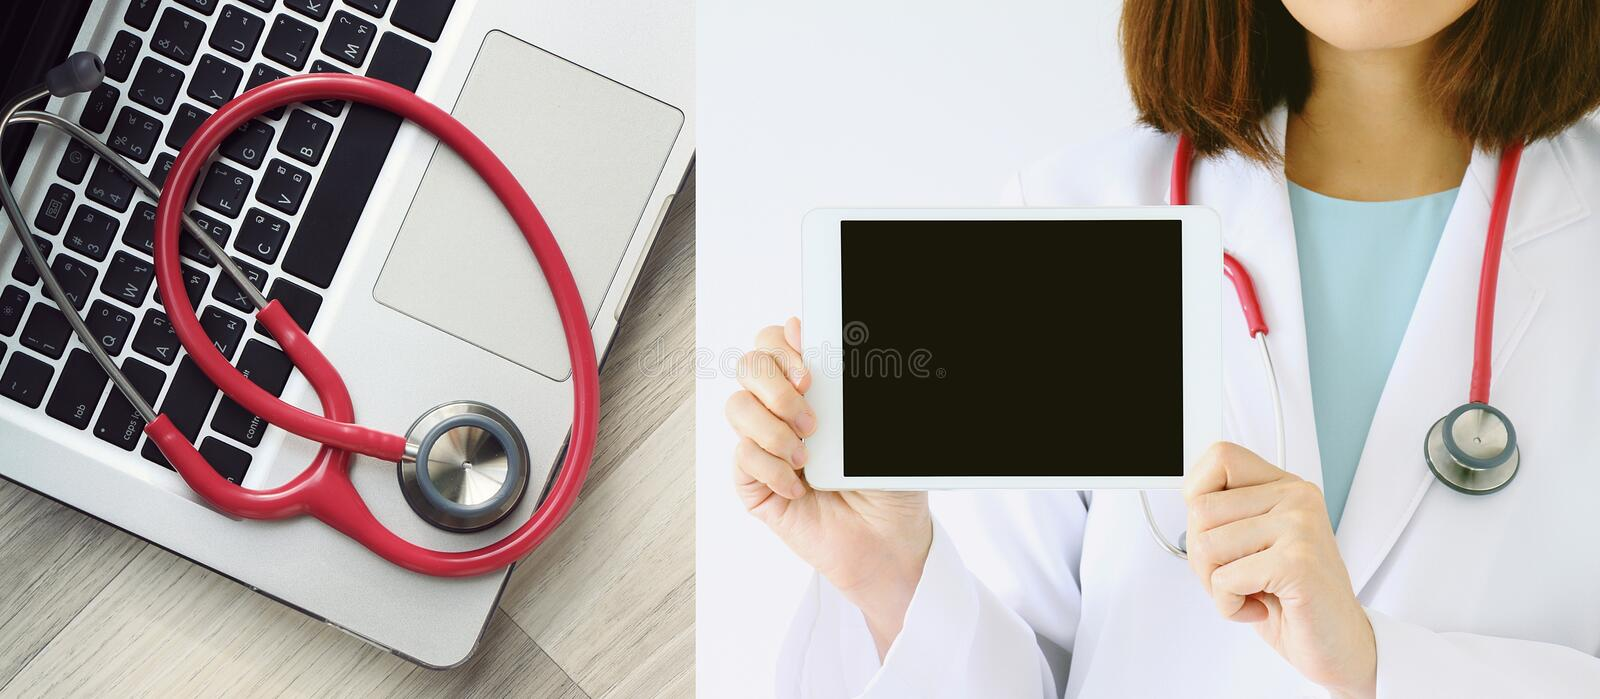 Medical and technology concept. Stethoscope and laptop computer. stock image